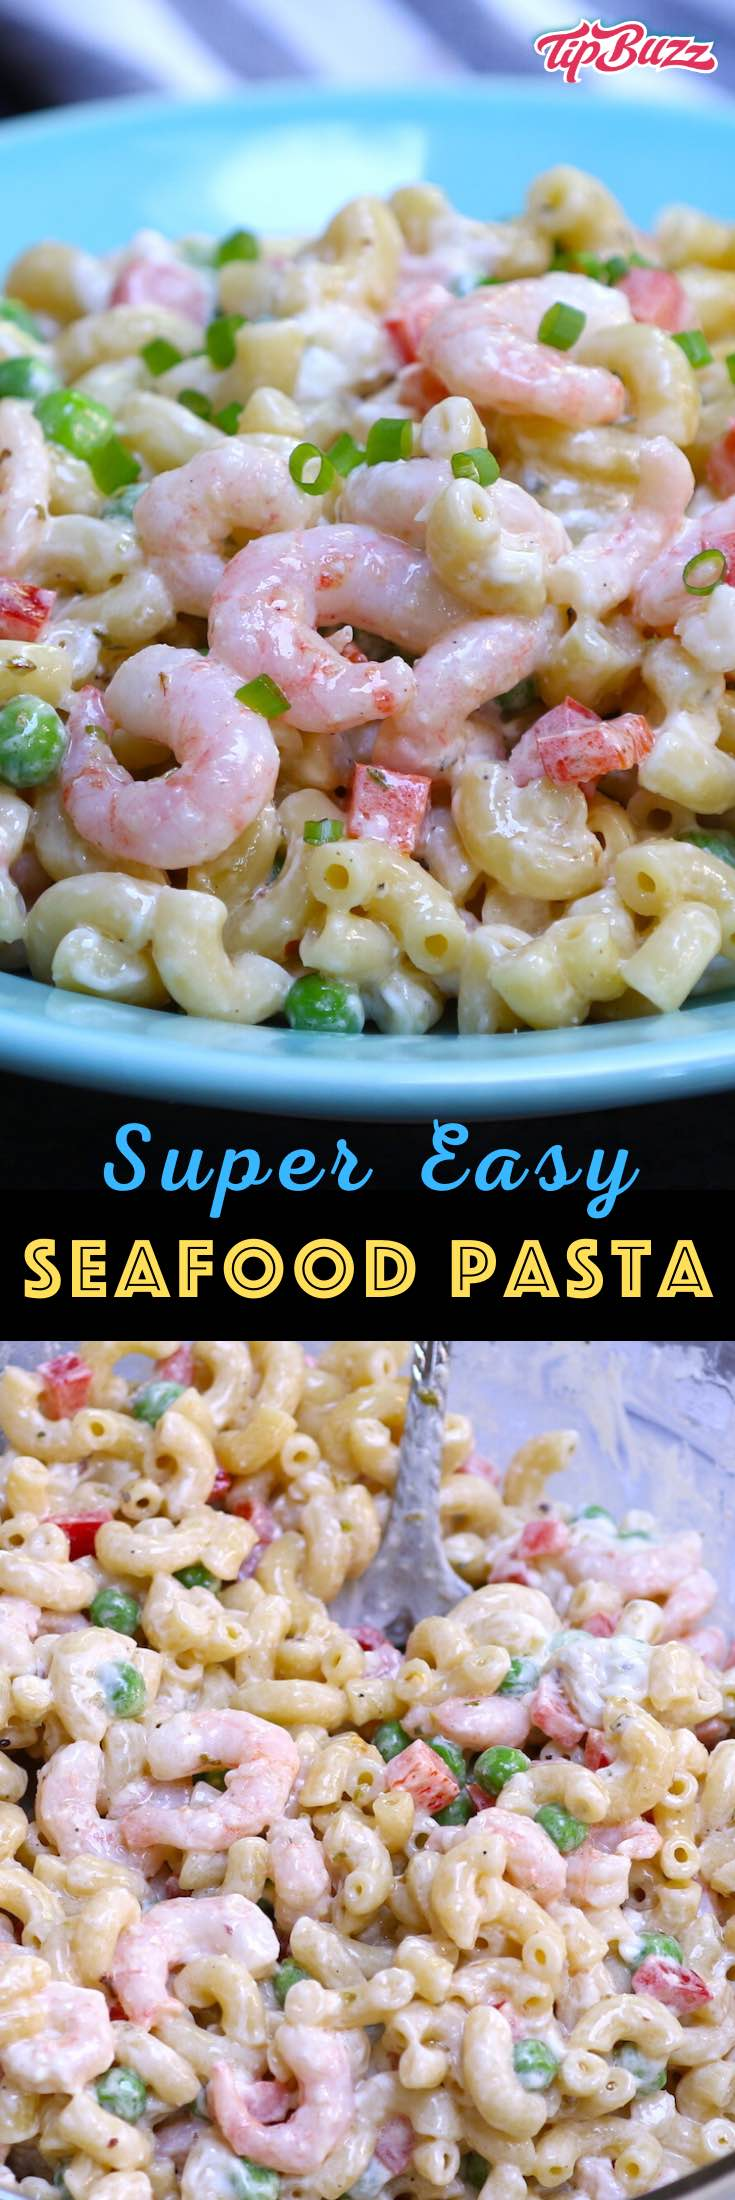 Seafood Pasta Salad is a delicious summery side dish with your favorite seafood, pasta, vegetables and Italian dressing. You can use shrimp, imitation crab, lump crab, lobster, or a combination! Perfect for a party, picnic, potluck or barbecue! #seafoodpastasalad #shrimppastasalad